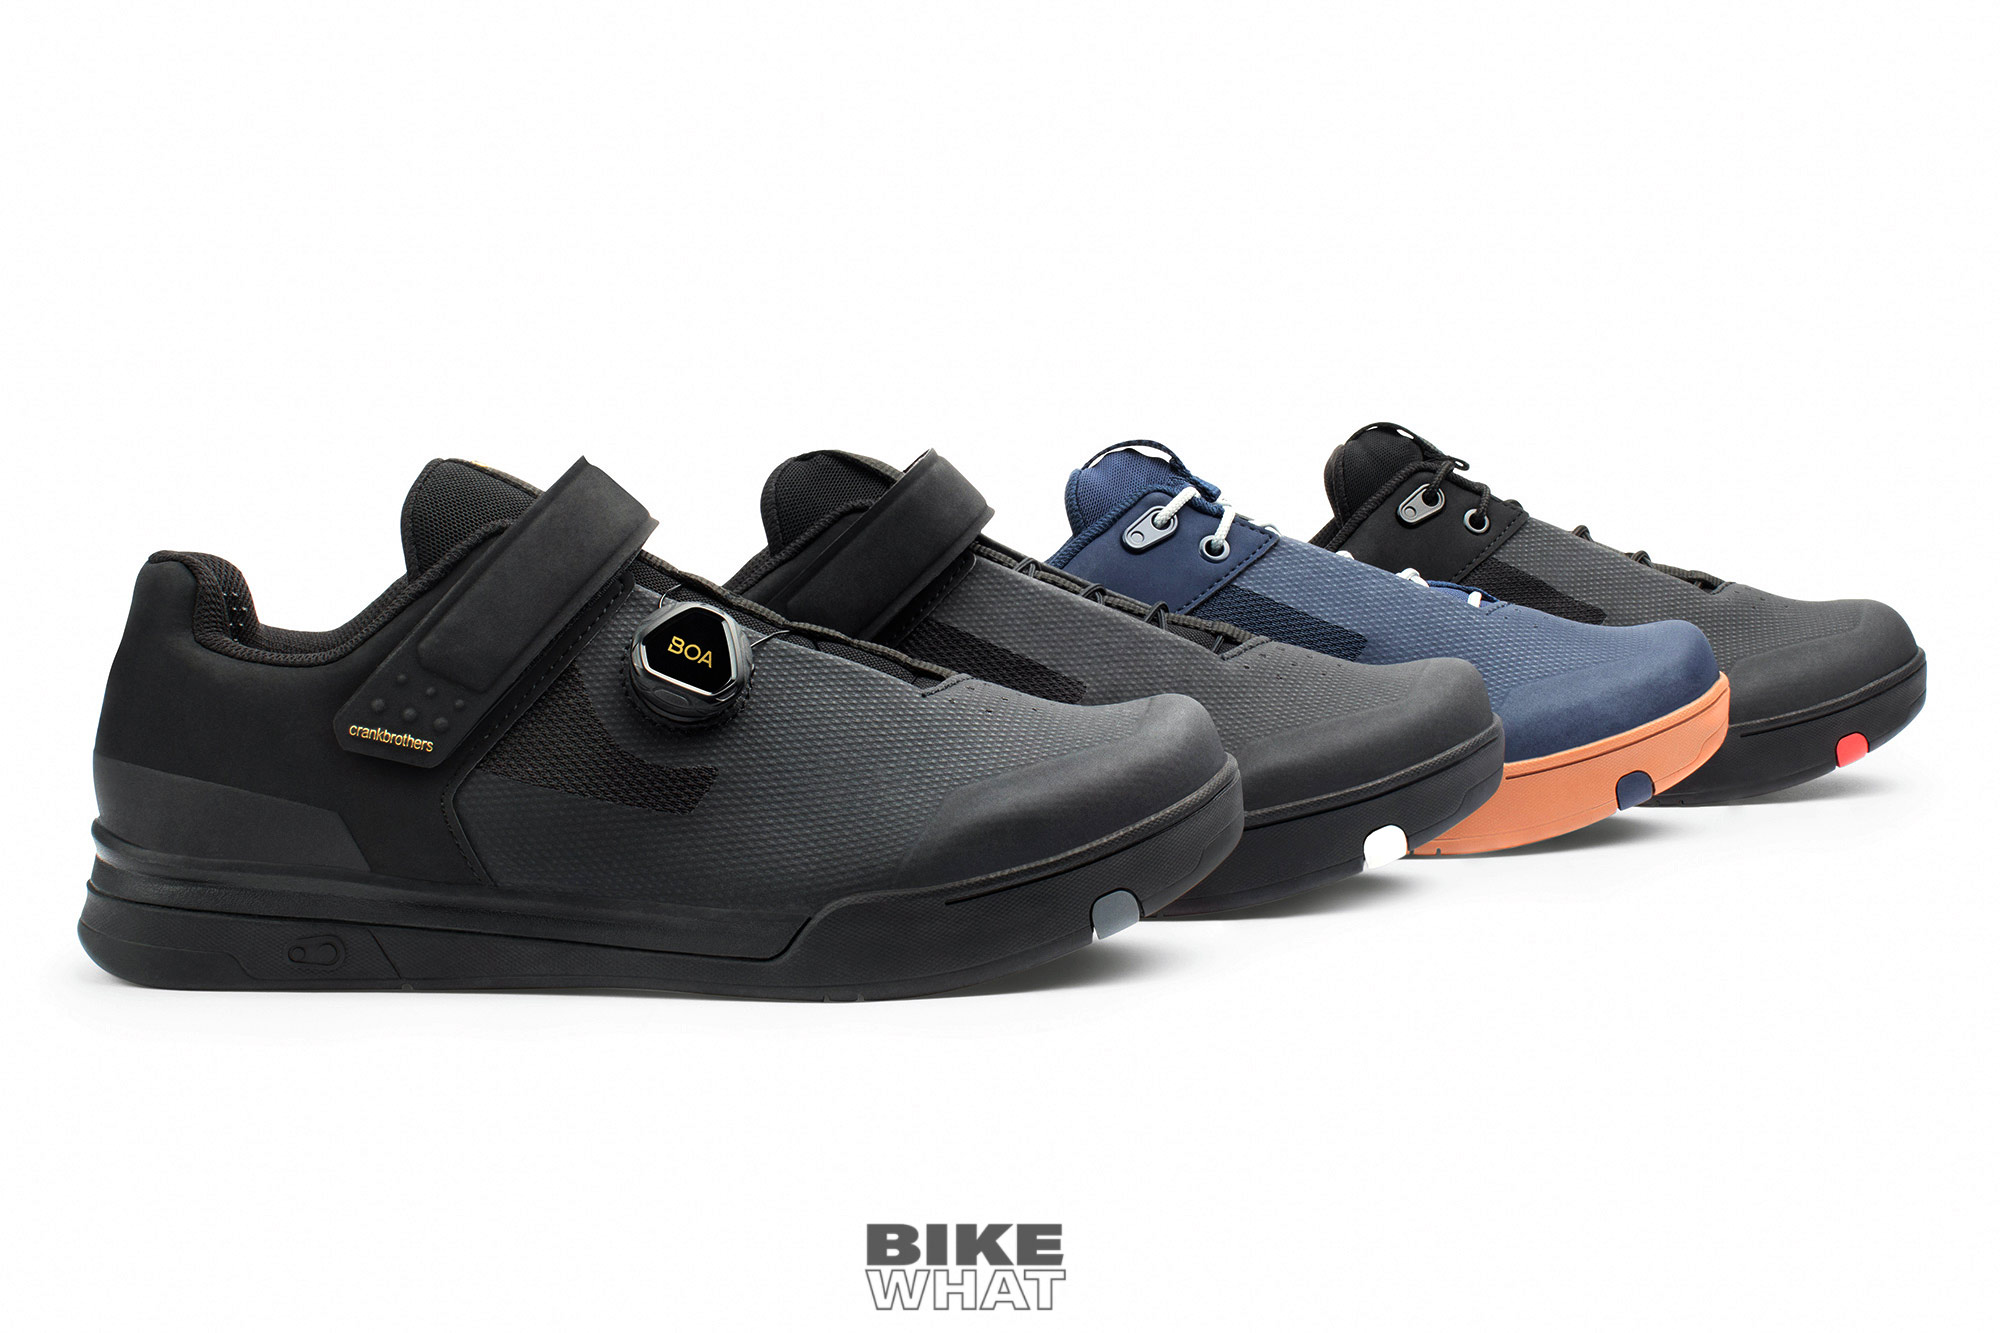 gear_Crankbrothers_shoe_5